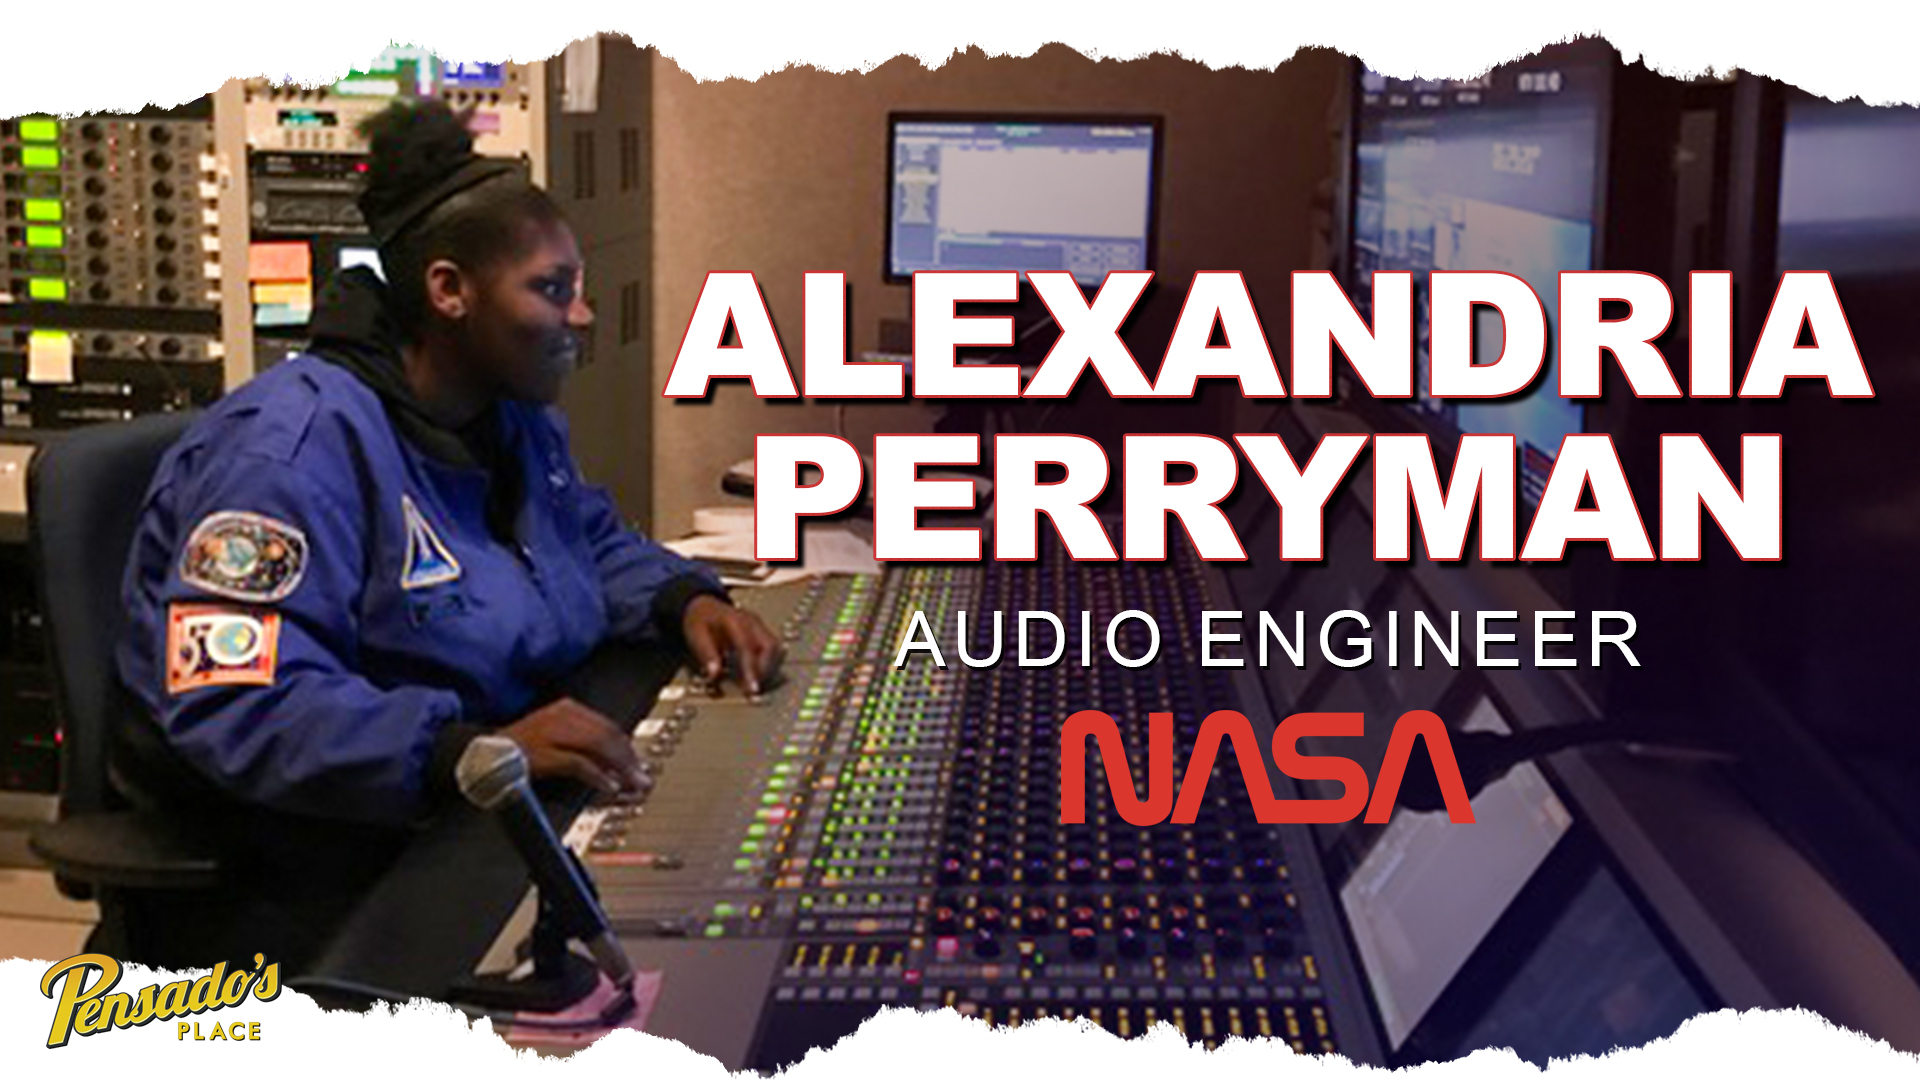 NASA Audio Engineer, Alexandria Perryman